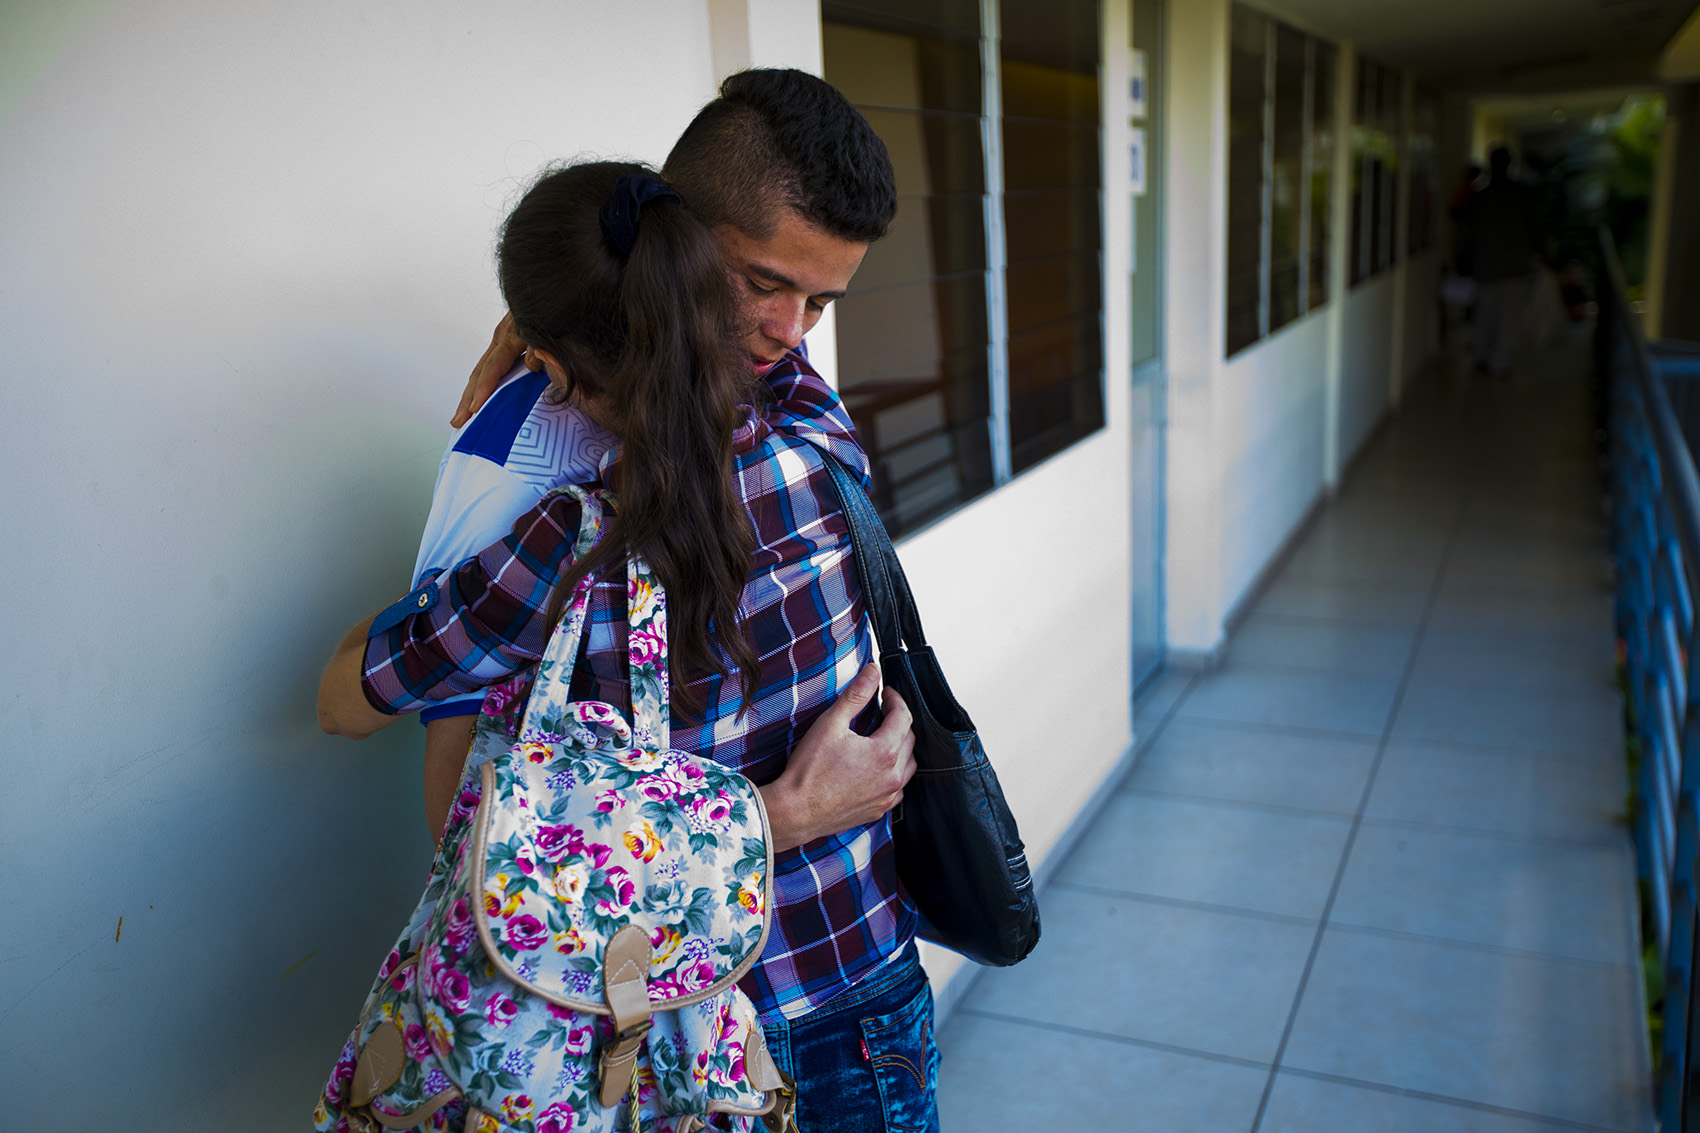 A 21-year-old man deported from Boston is reunited with his mother at the Centro de Atención integral a Migrante (Comprehensive Migrant Care Center) in San Salvador. Photo by Jesse Costa for WBUR